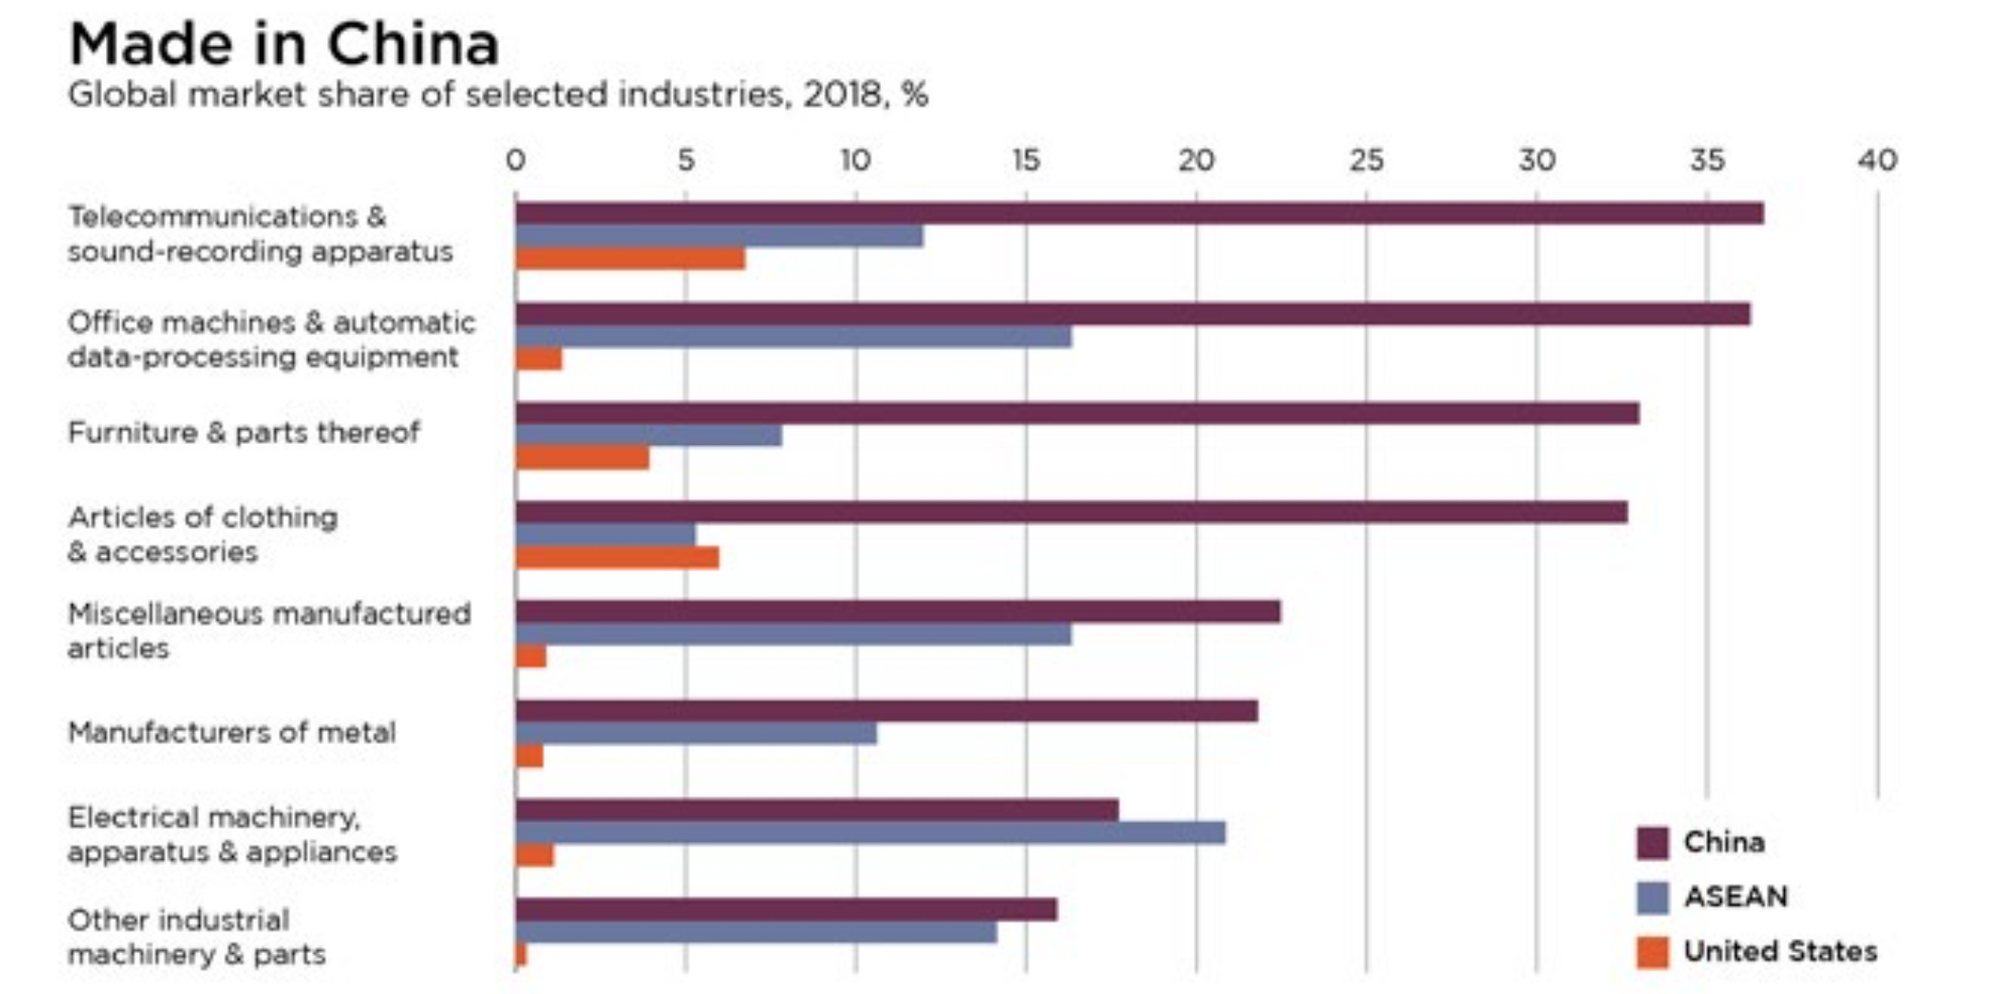 What China is to the World by Industries